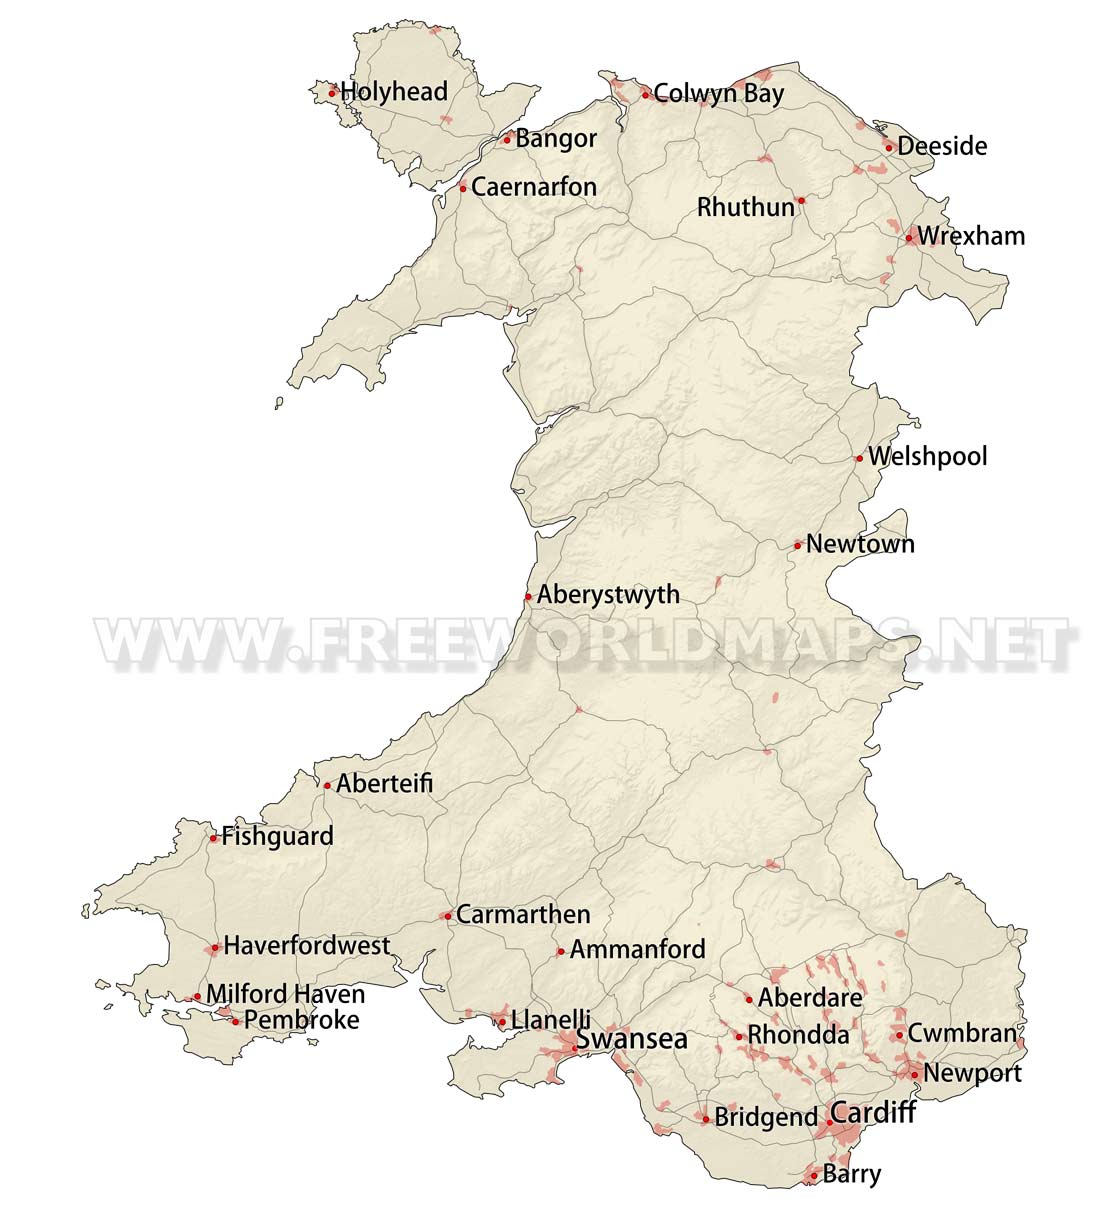 Wales Maps by Freeworldmapsnet